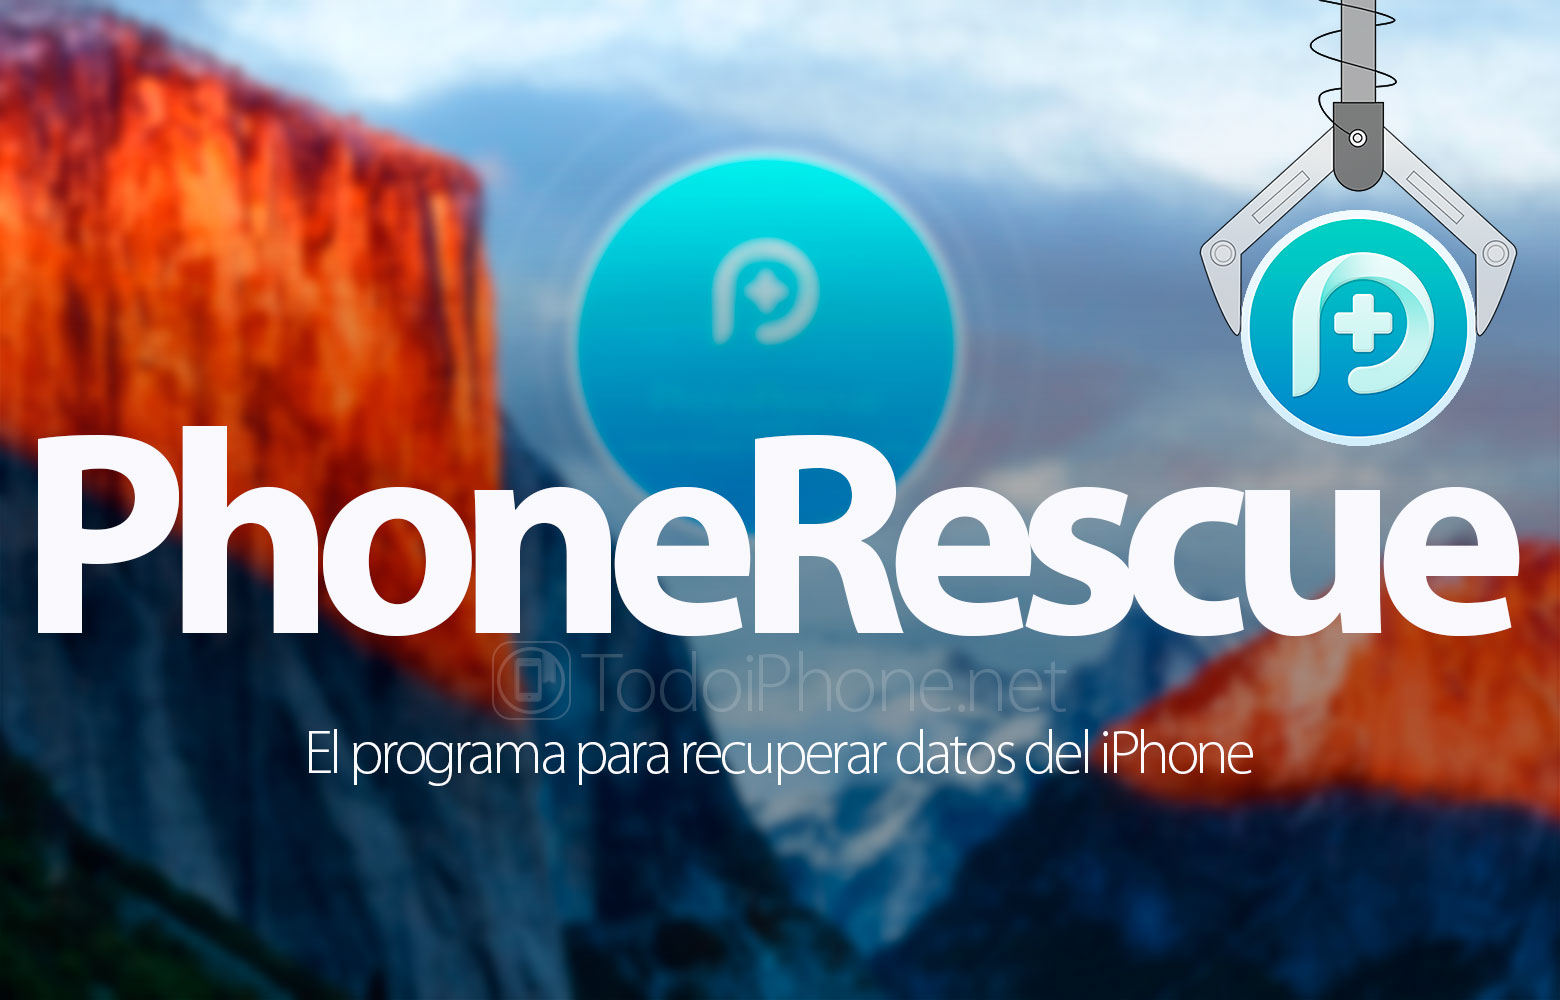 phonerescue-app-recuperar-datos-iphone